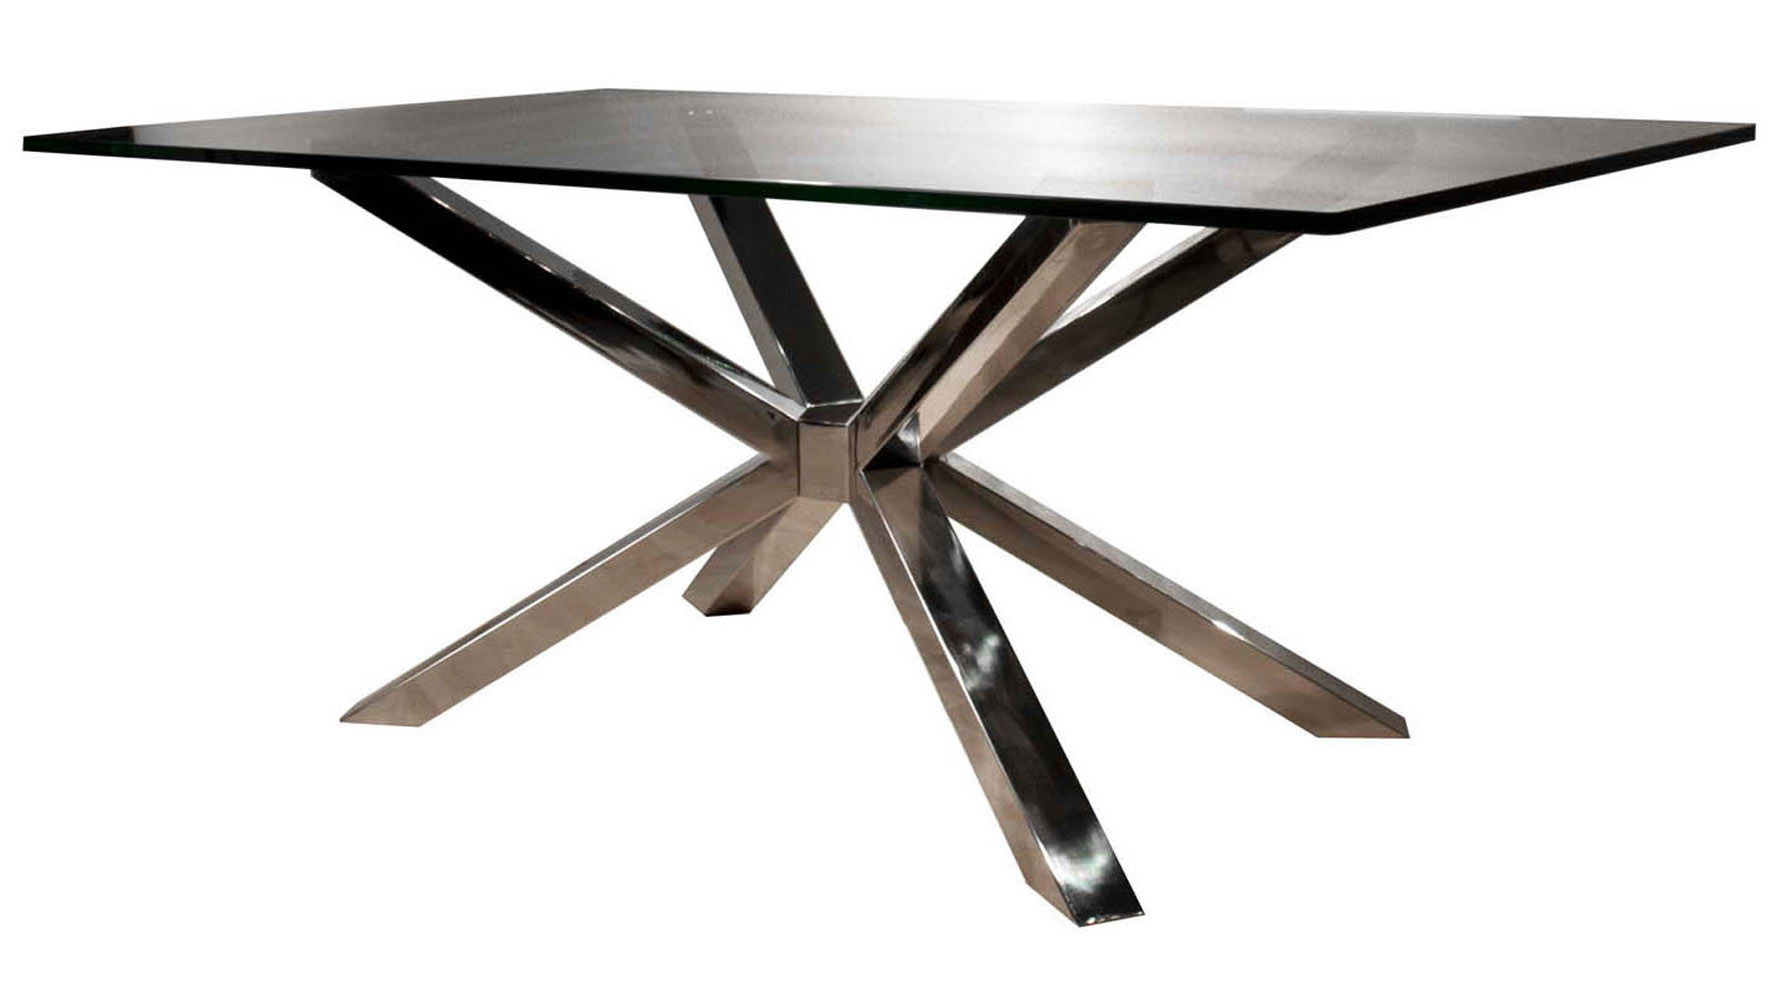 Modern Cointet Rectangle Dining Table Base Stainless  : moderncointetrectanglediningtablebasestainlesssteel1 from www.zurifurniture.com size 1778 x 1000 jpeg 91kB